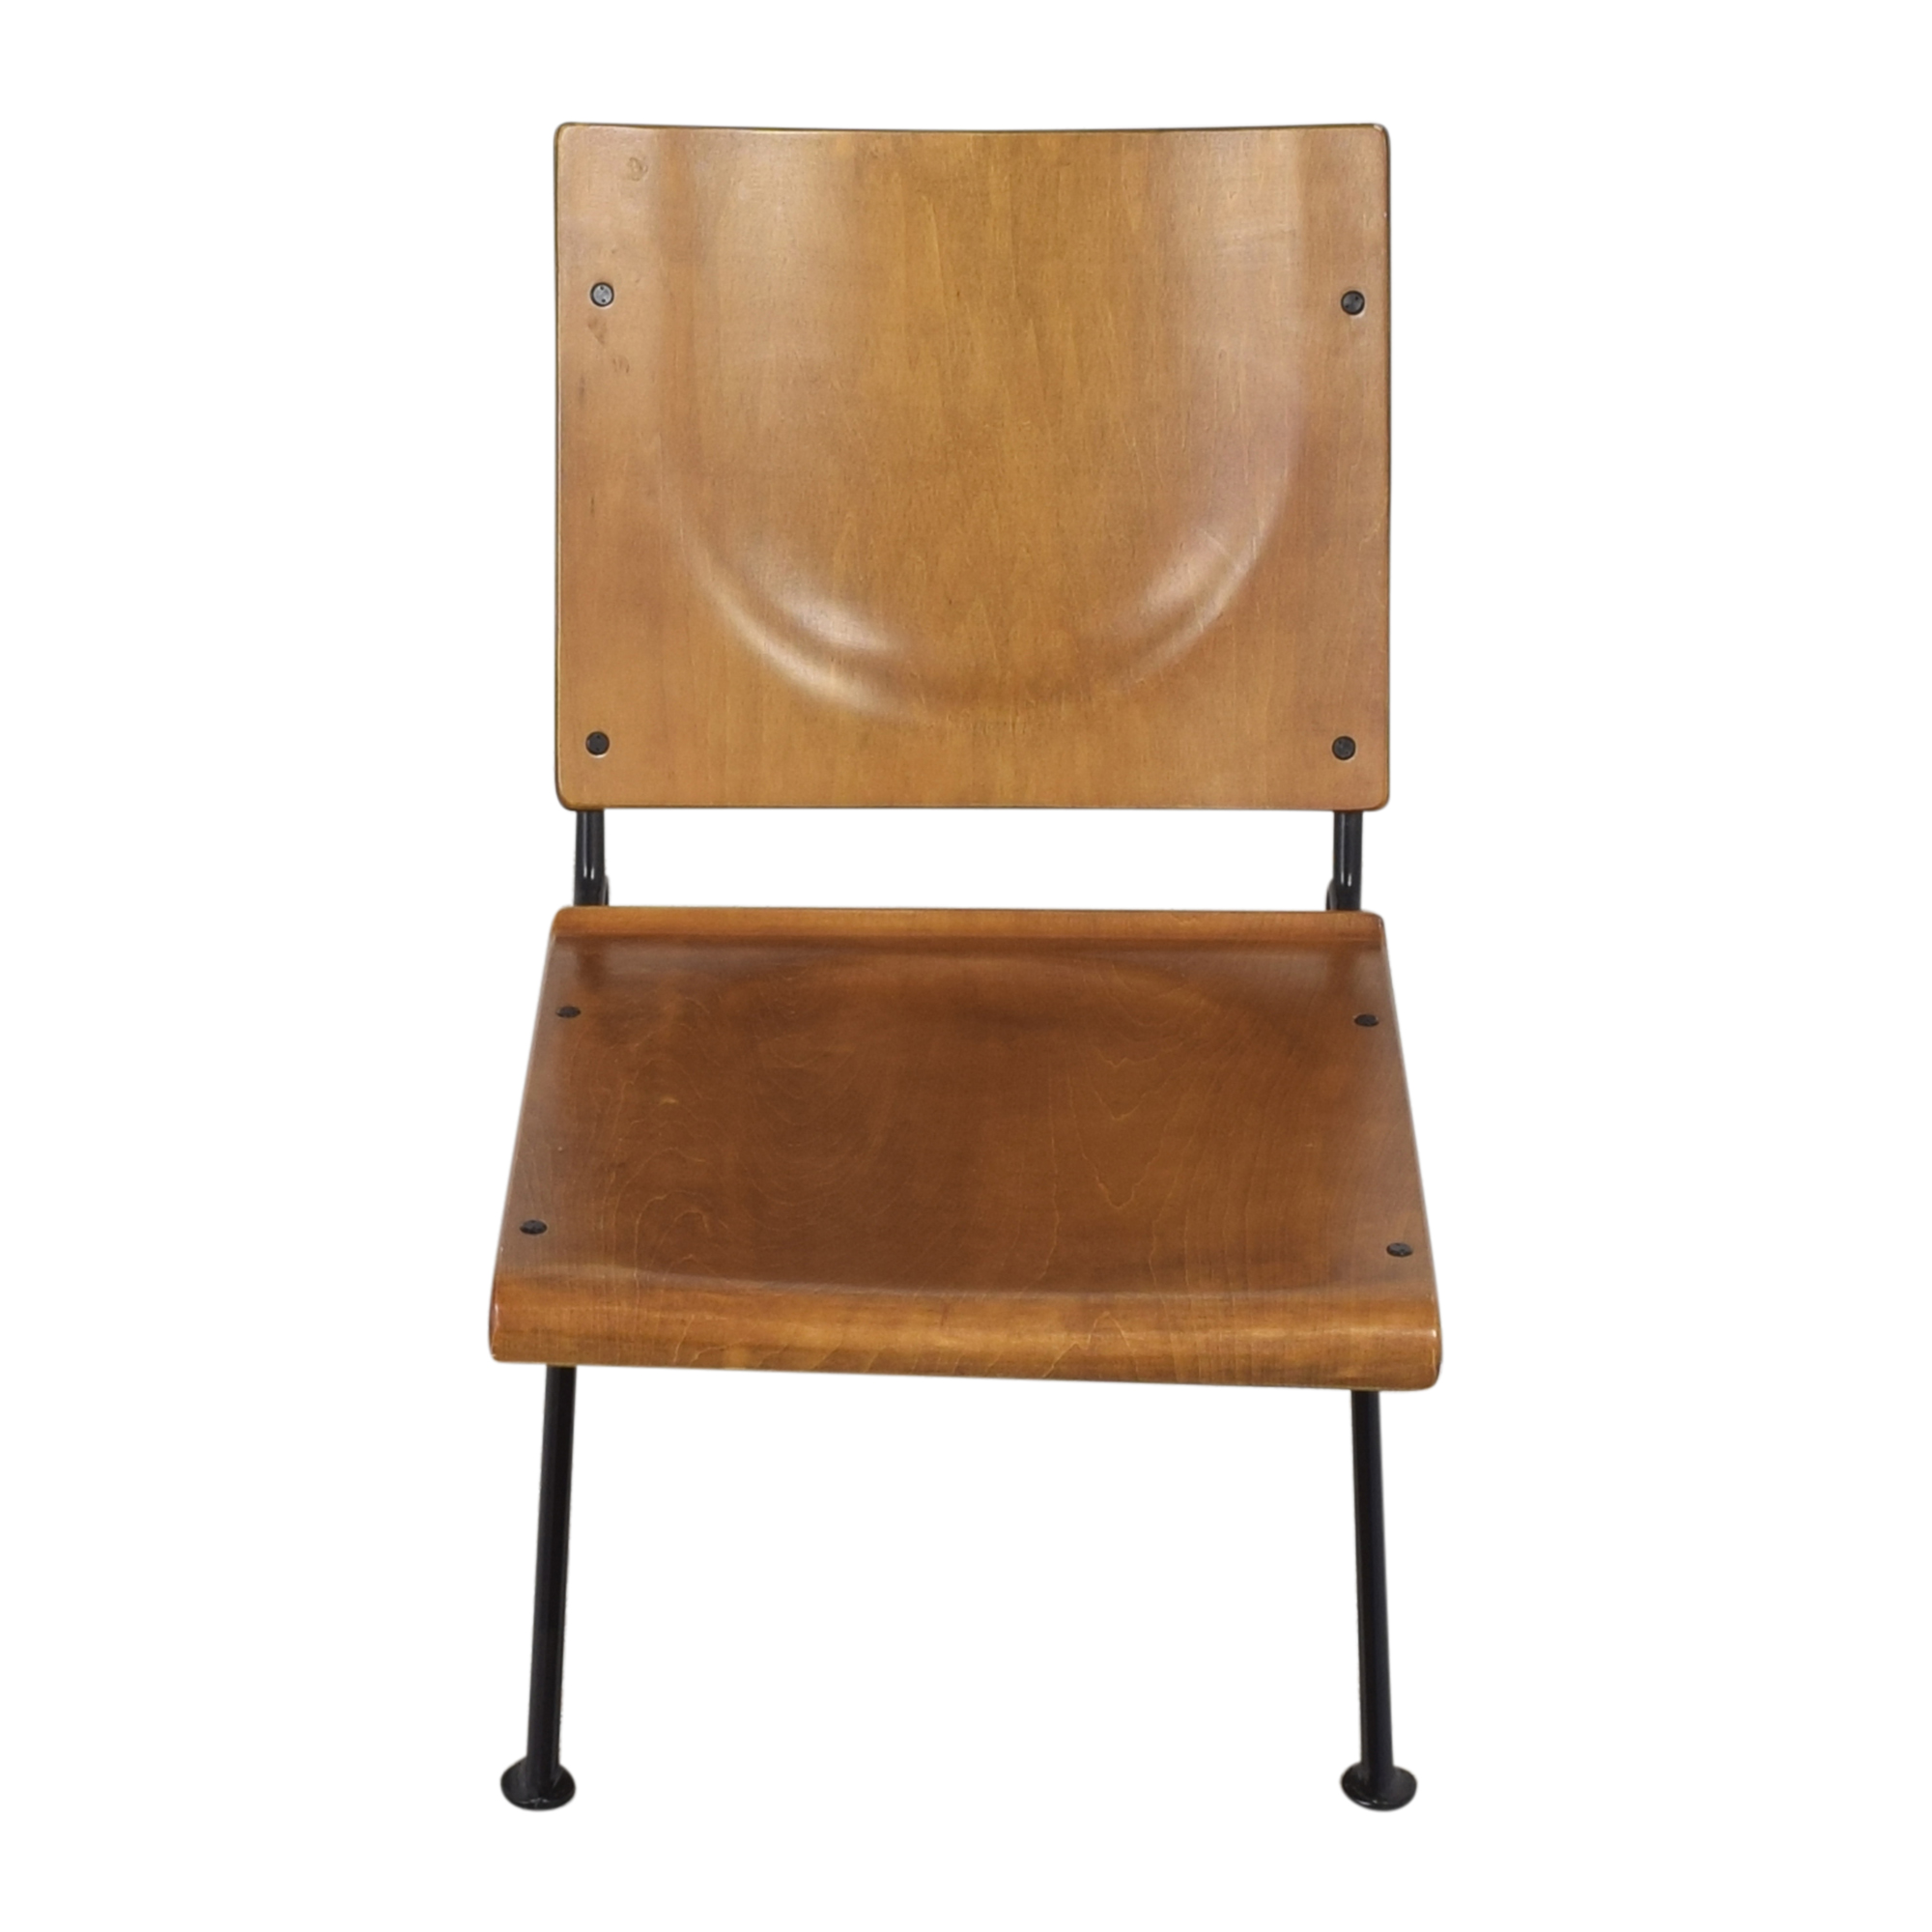 Industry West Industry West Stride Lounge Chair price